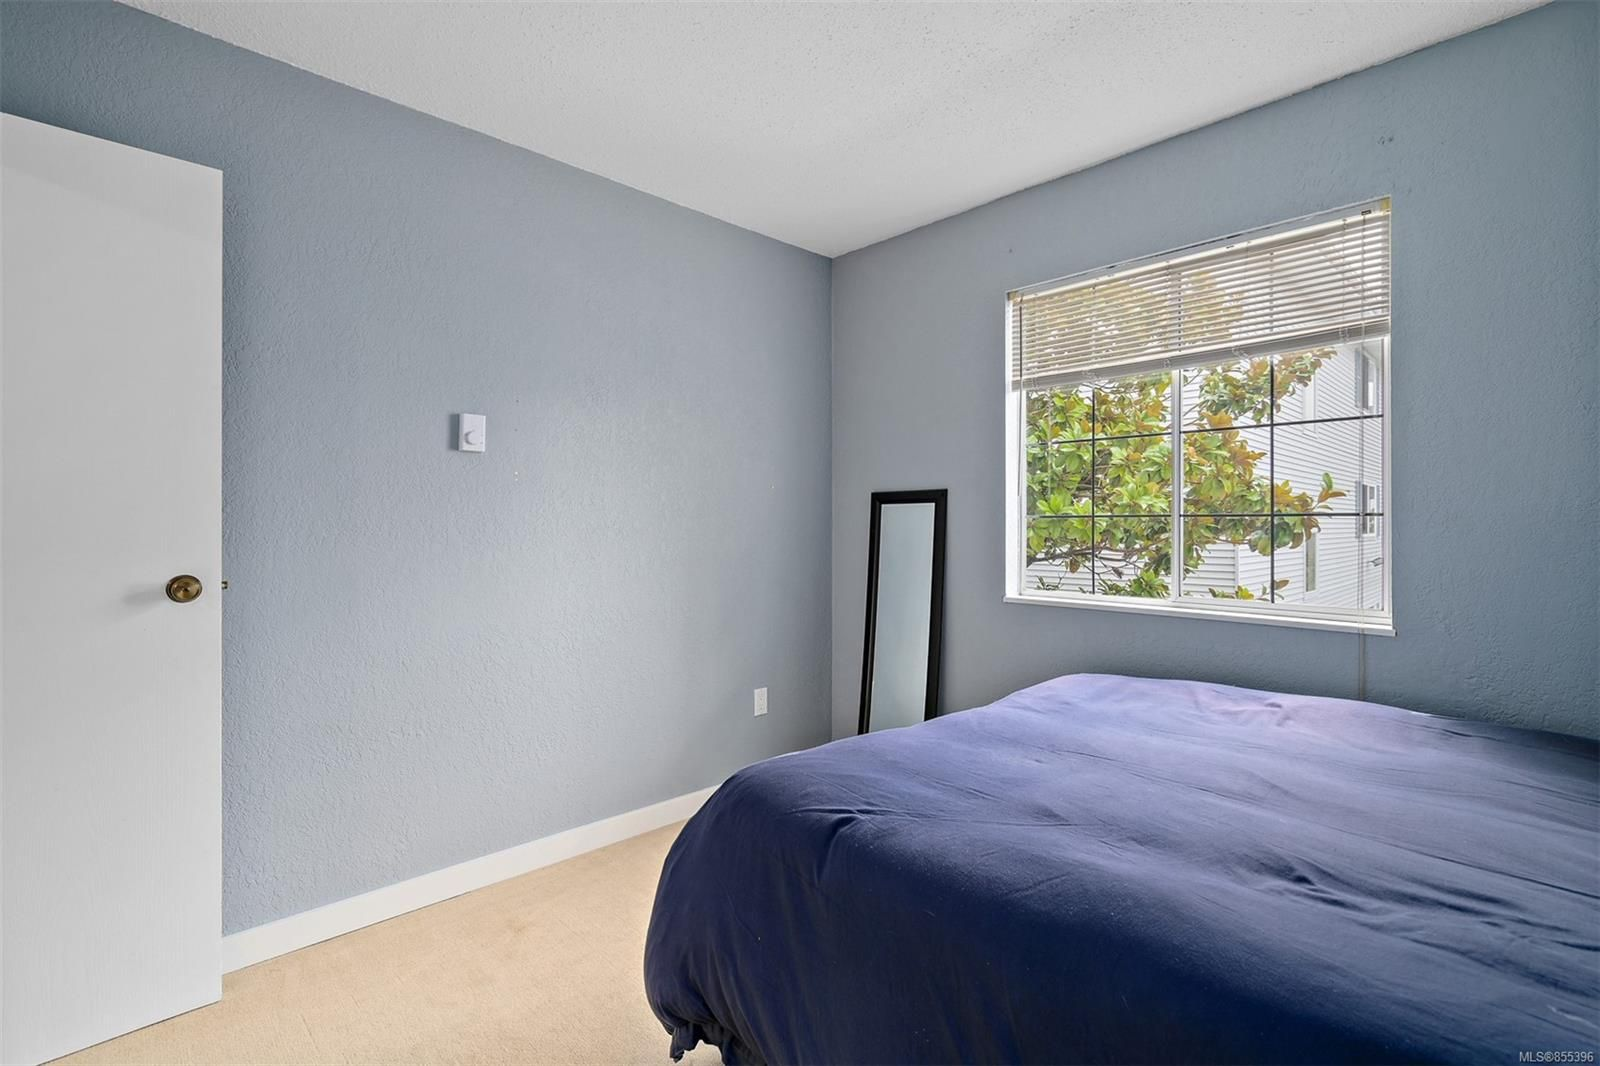 Photo 30: Photos: 308 1060 Linden Ave in : Vi Rockland Condo for sale (Victoria)  : MLS®# 855396